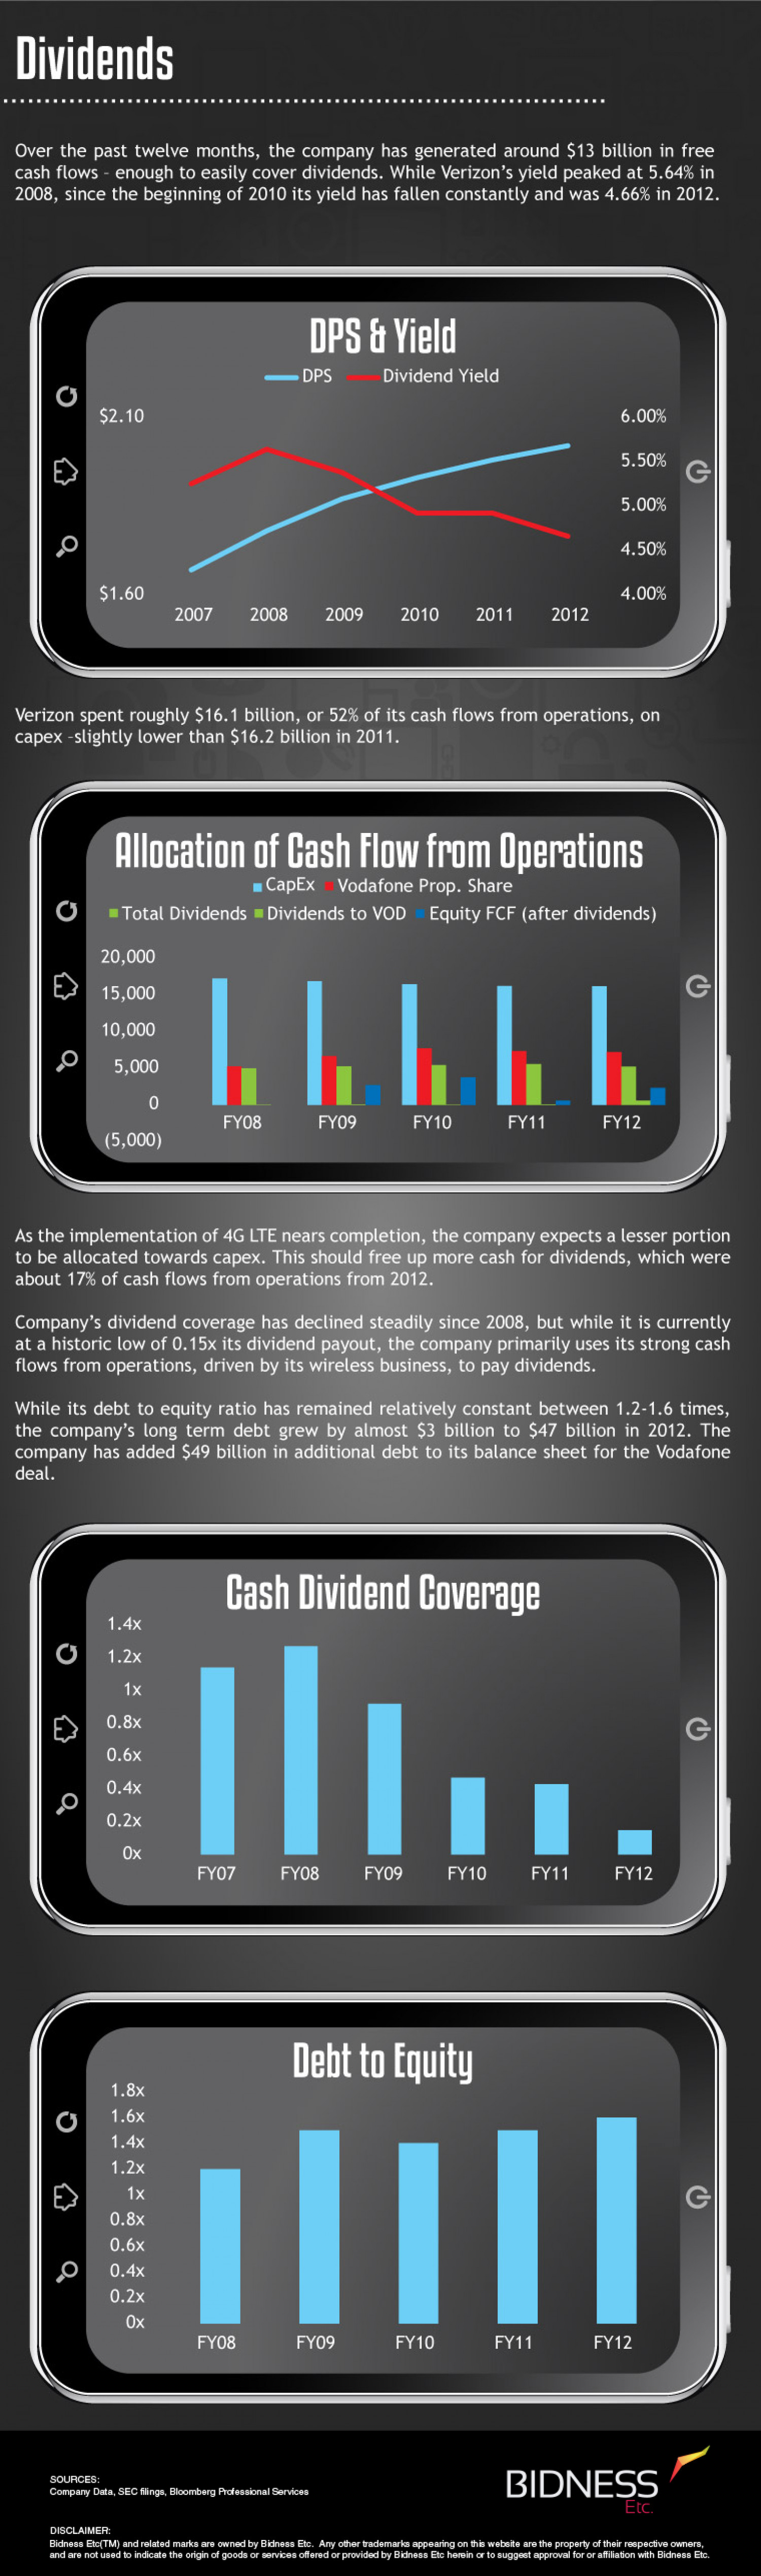 Verizon (VZ) Dividends Infographic